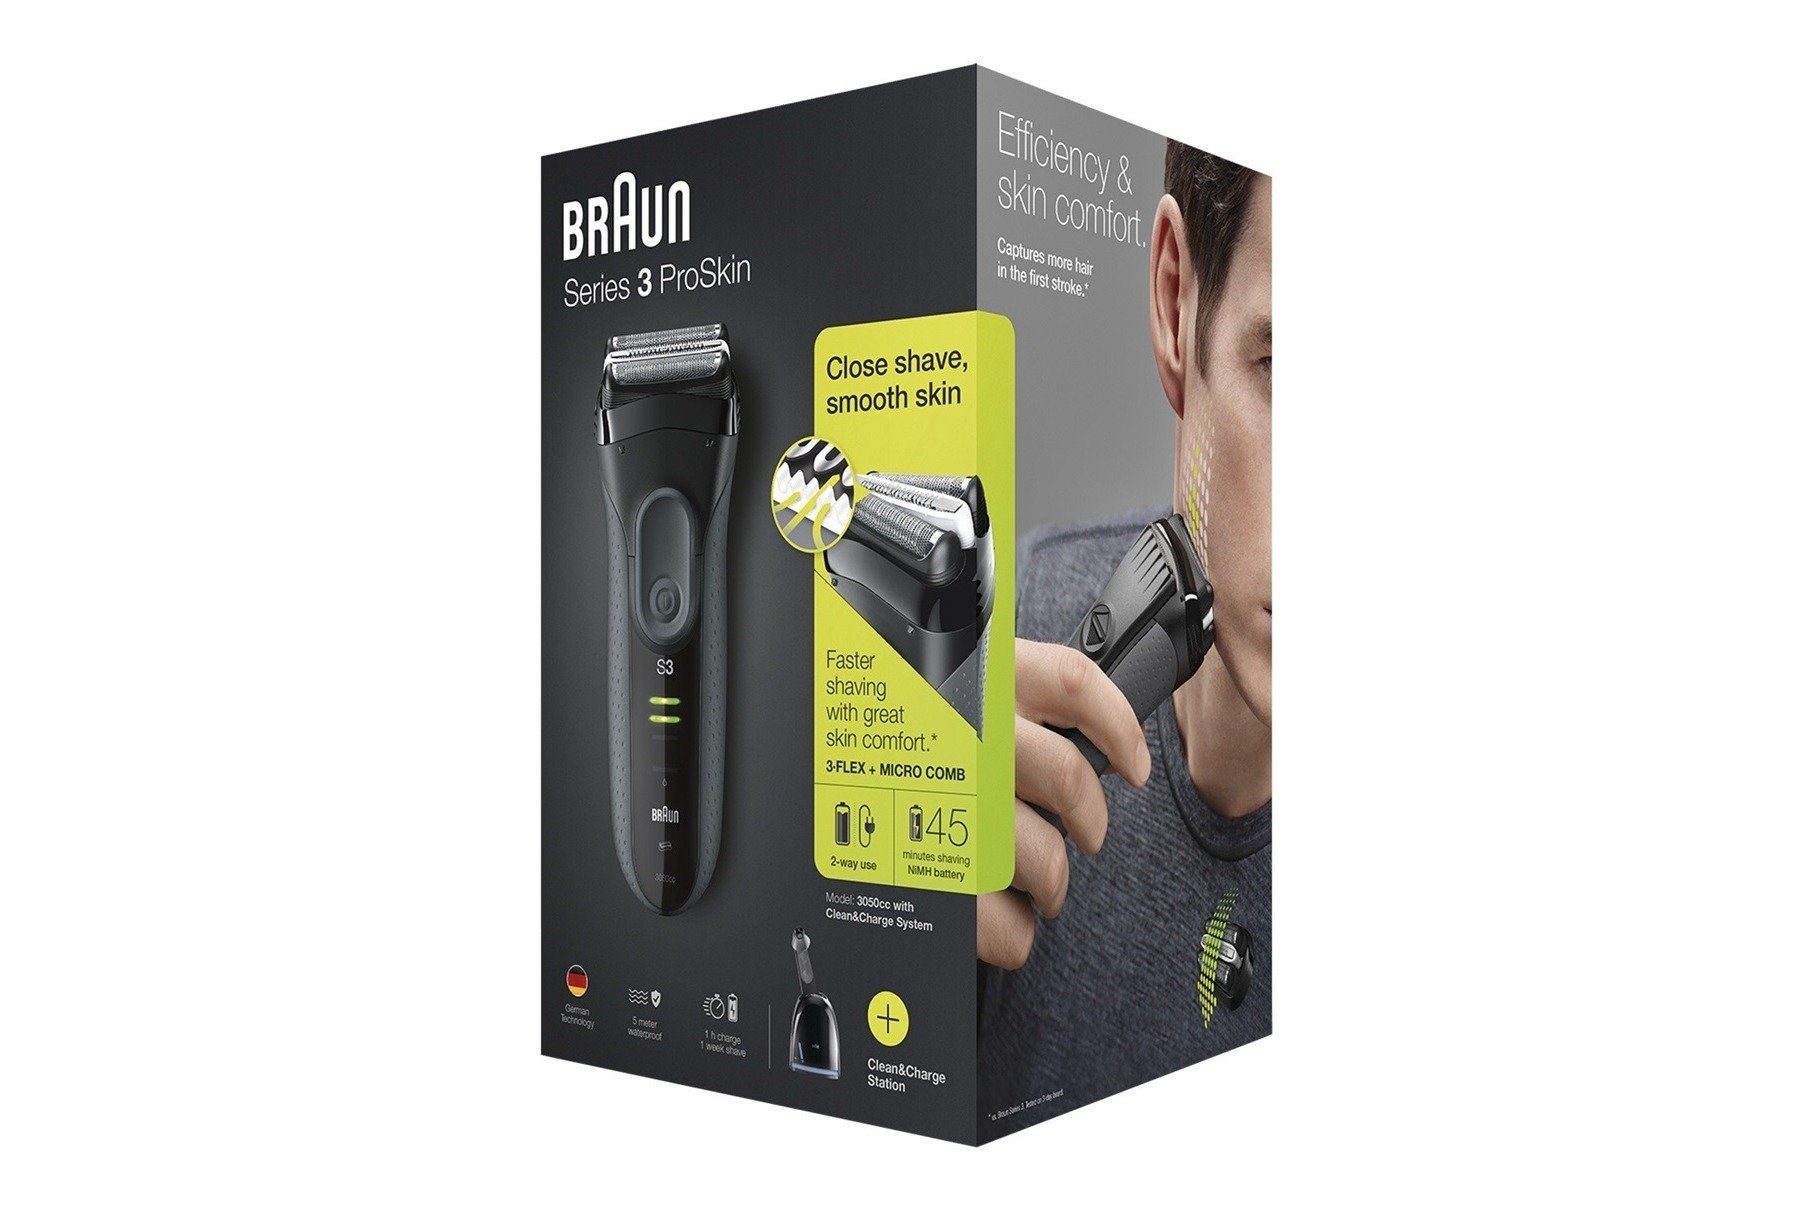 Braun Series 3 ProSkin 3050cc Shaver Grey + Clean Charger Station ... 1582a664c8